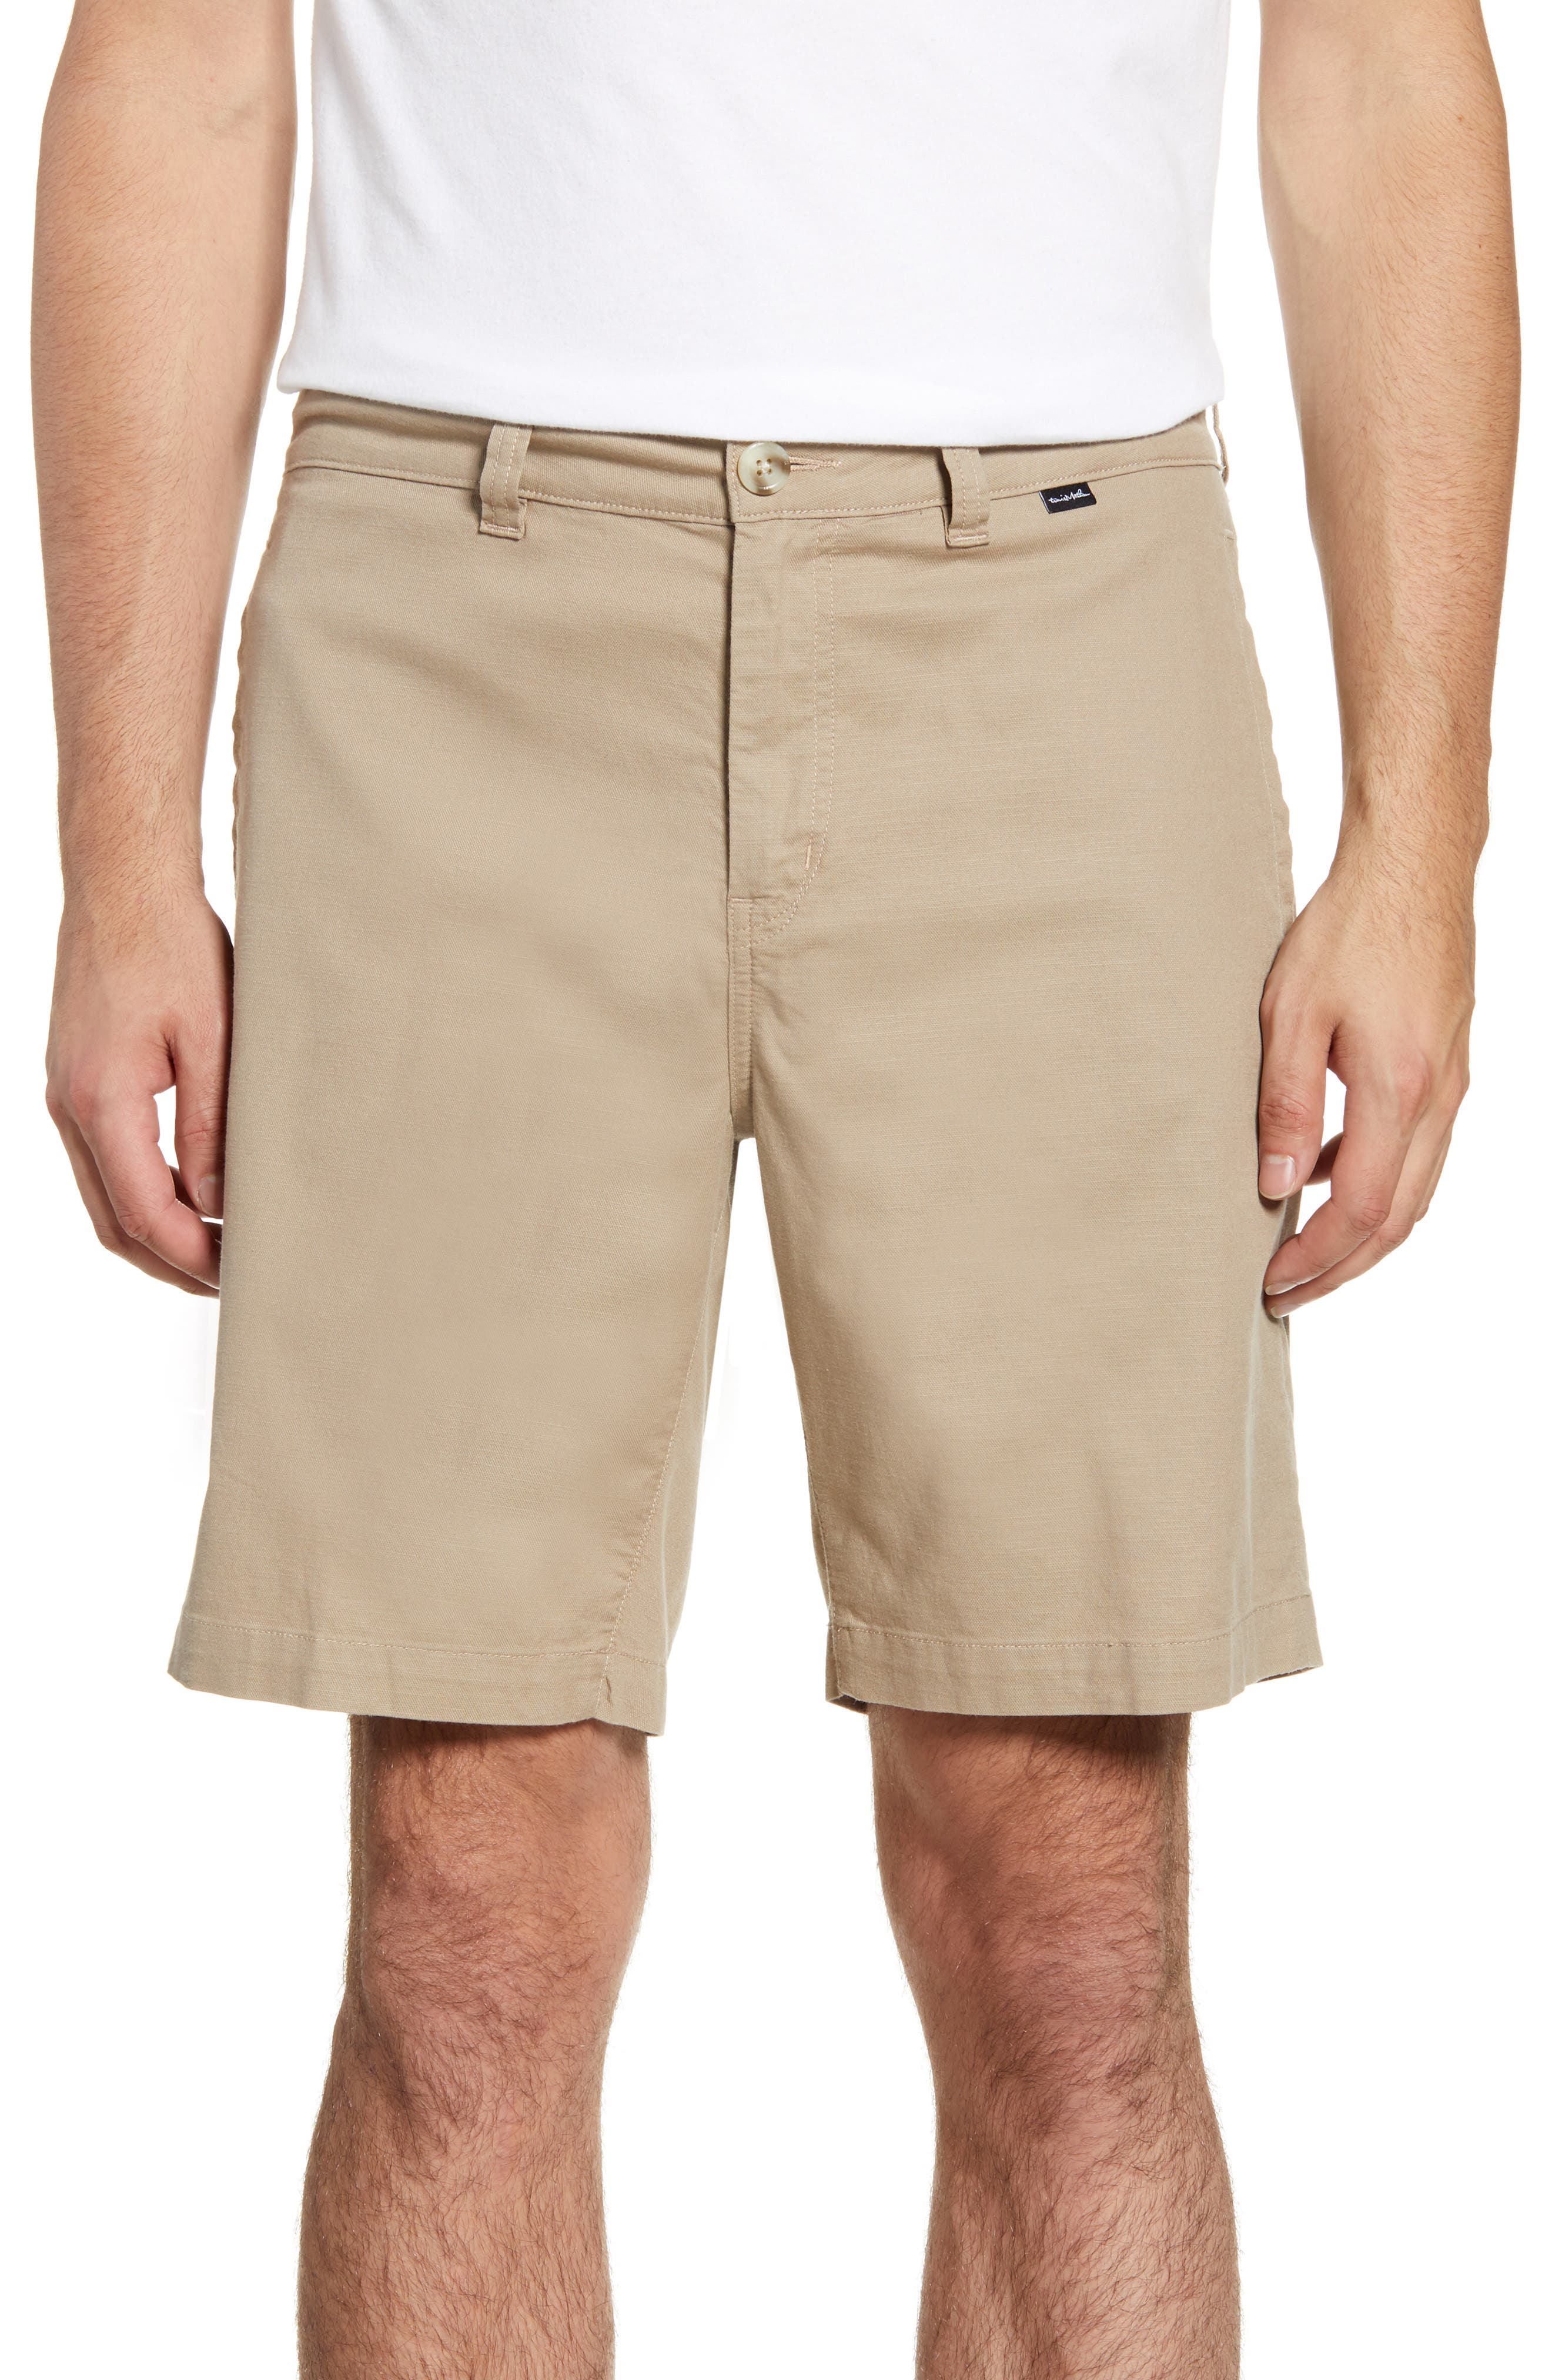 A soft and breezy stretch-cotton blend means flexible comfort in outdoorsy shorts shaped in a knee-length cut. Style Name: Travismathew Brewer Shorts. Style Number: 5881237. Available in stores.